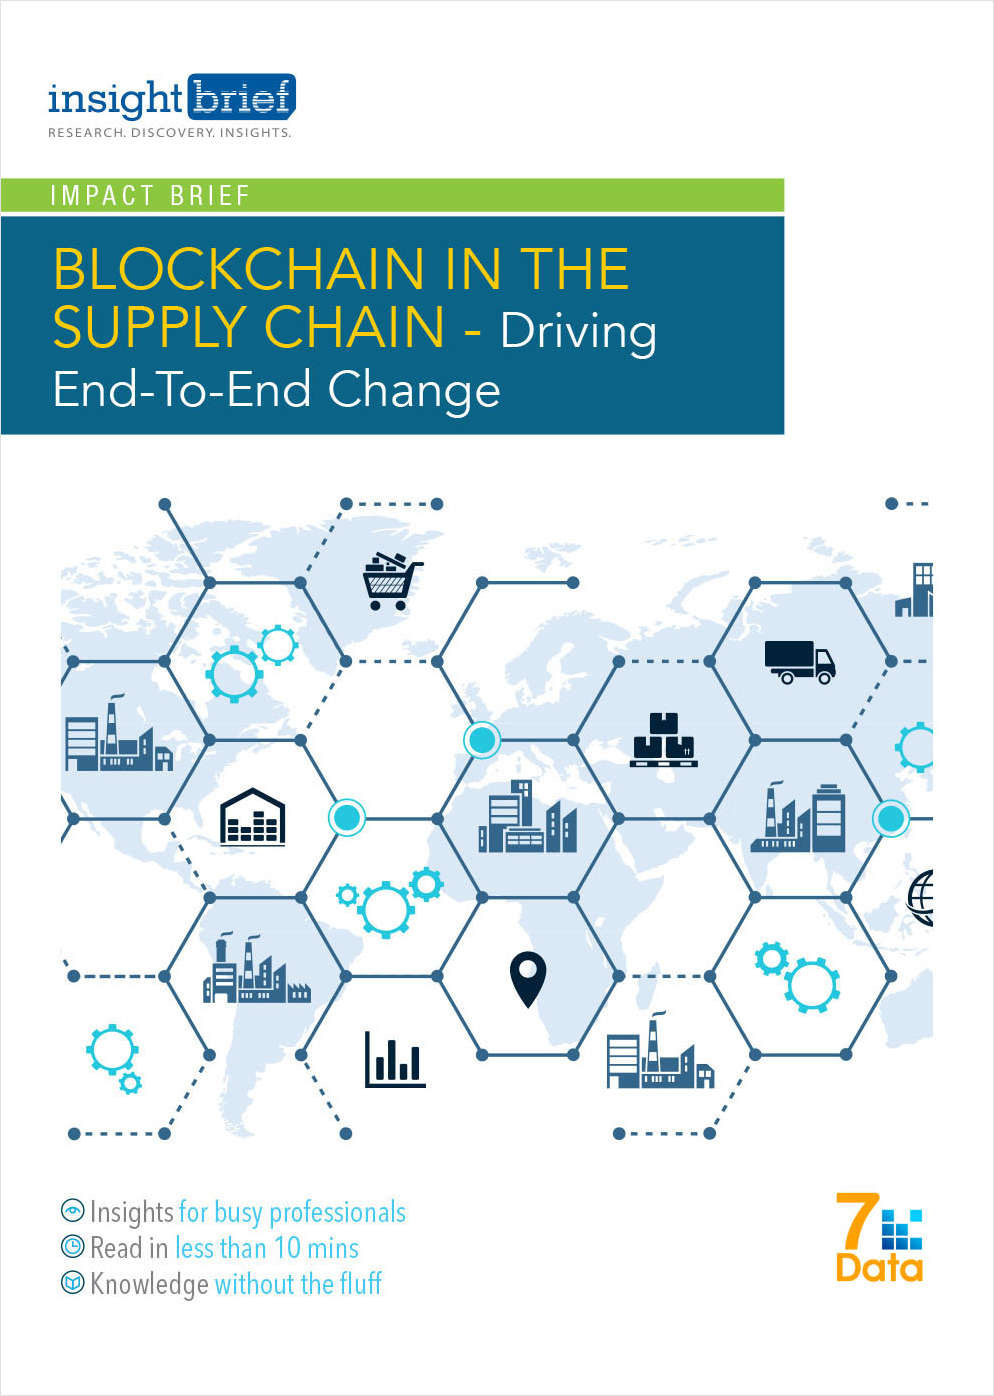 Blockchain in the Supply Chain - Driving End-to-End Change